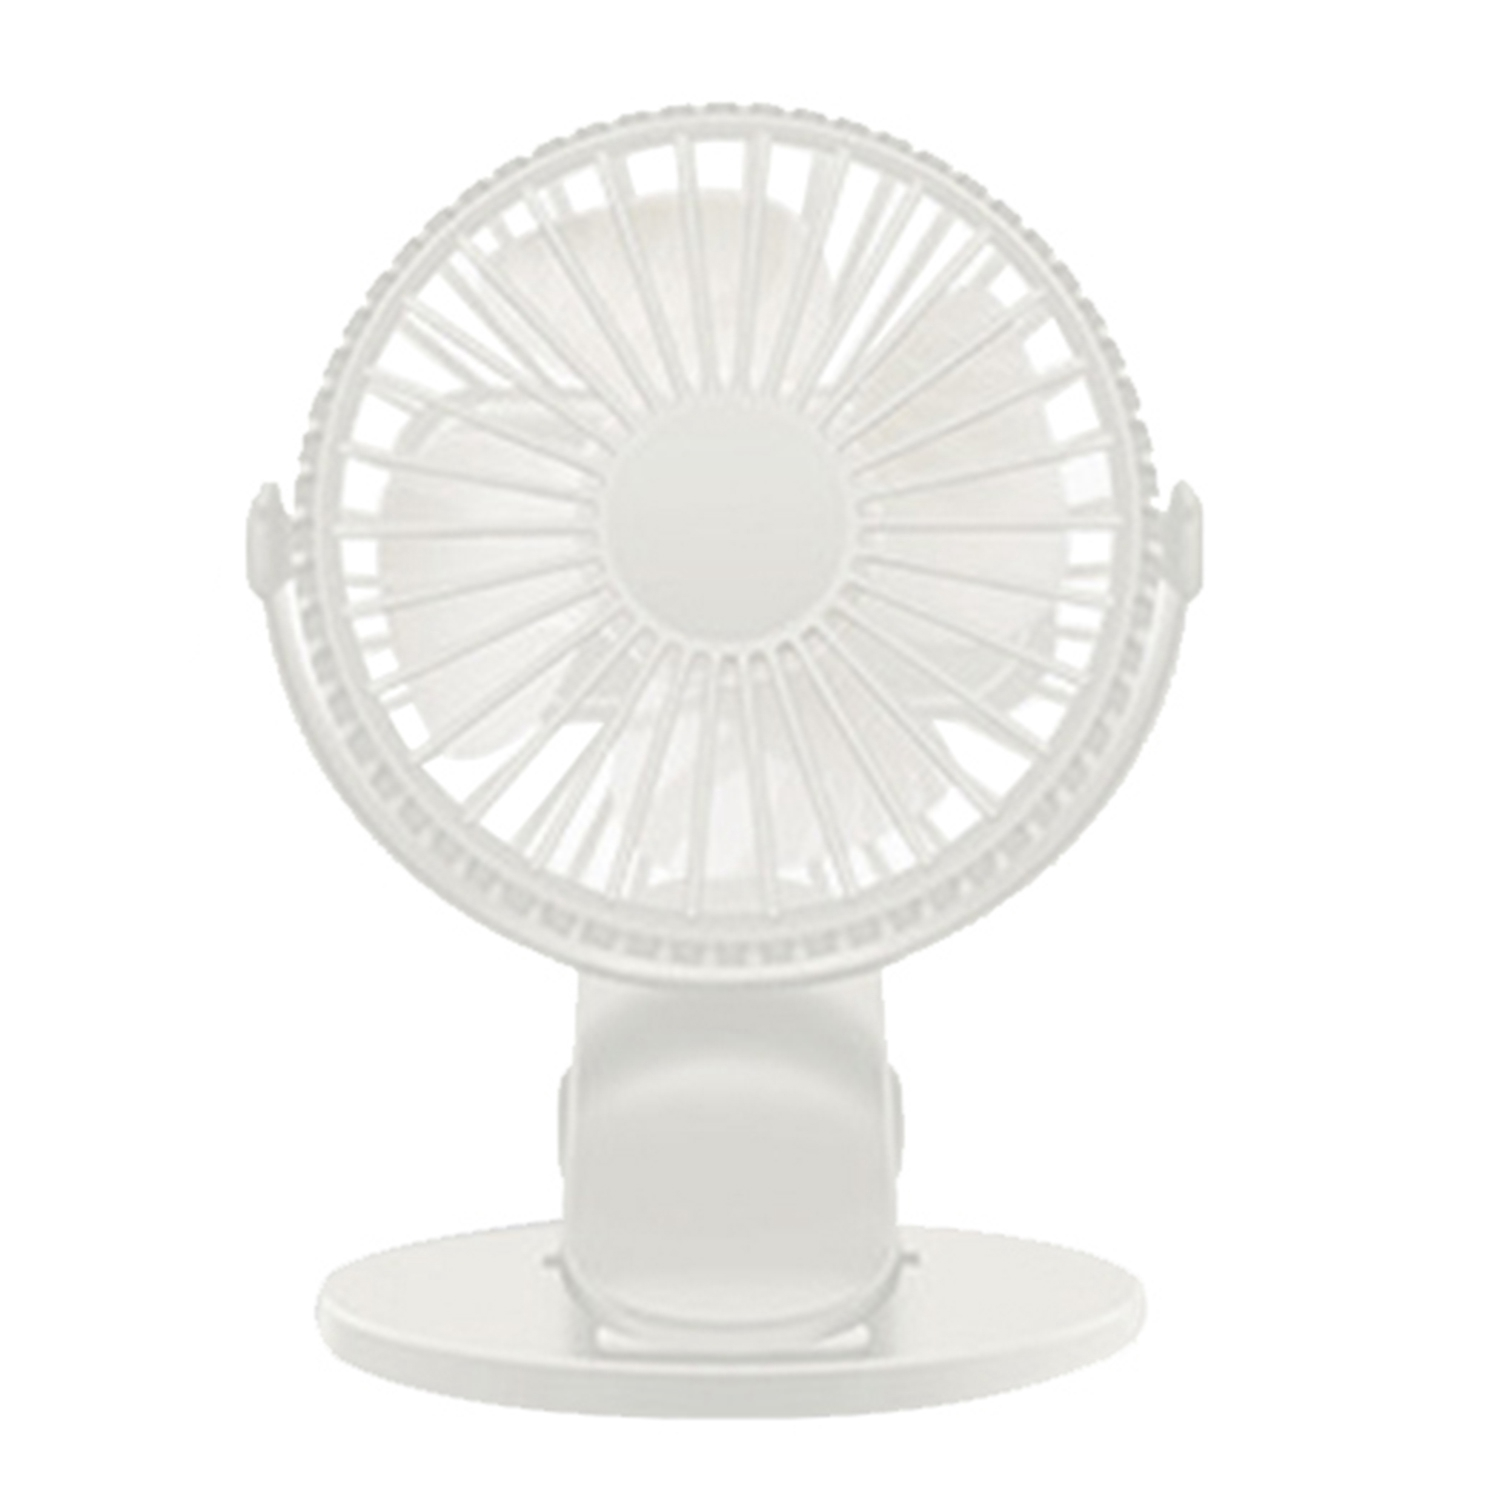 Small Air Conditioning Appliances Impartial Lice Portable Desk Usb Cooler Cooling Fan Usb Mini Fans Operation Super Mute Silent Pc/laptop/notebook Fans